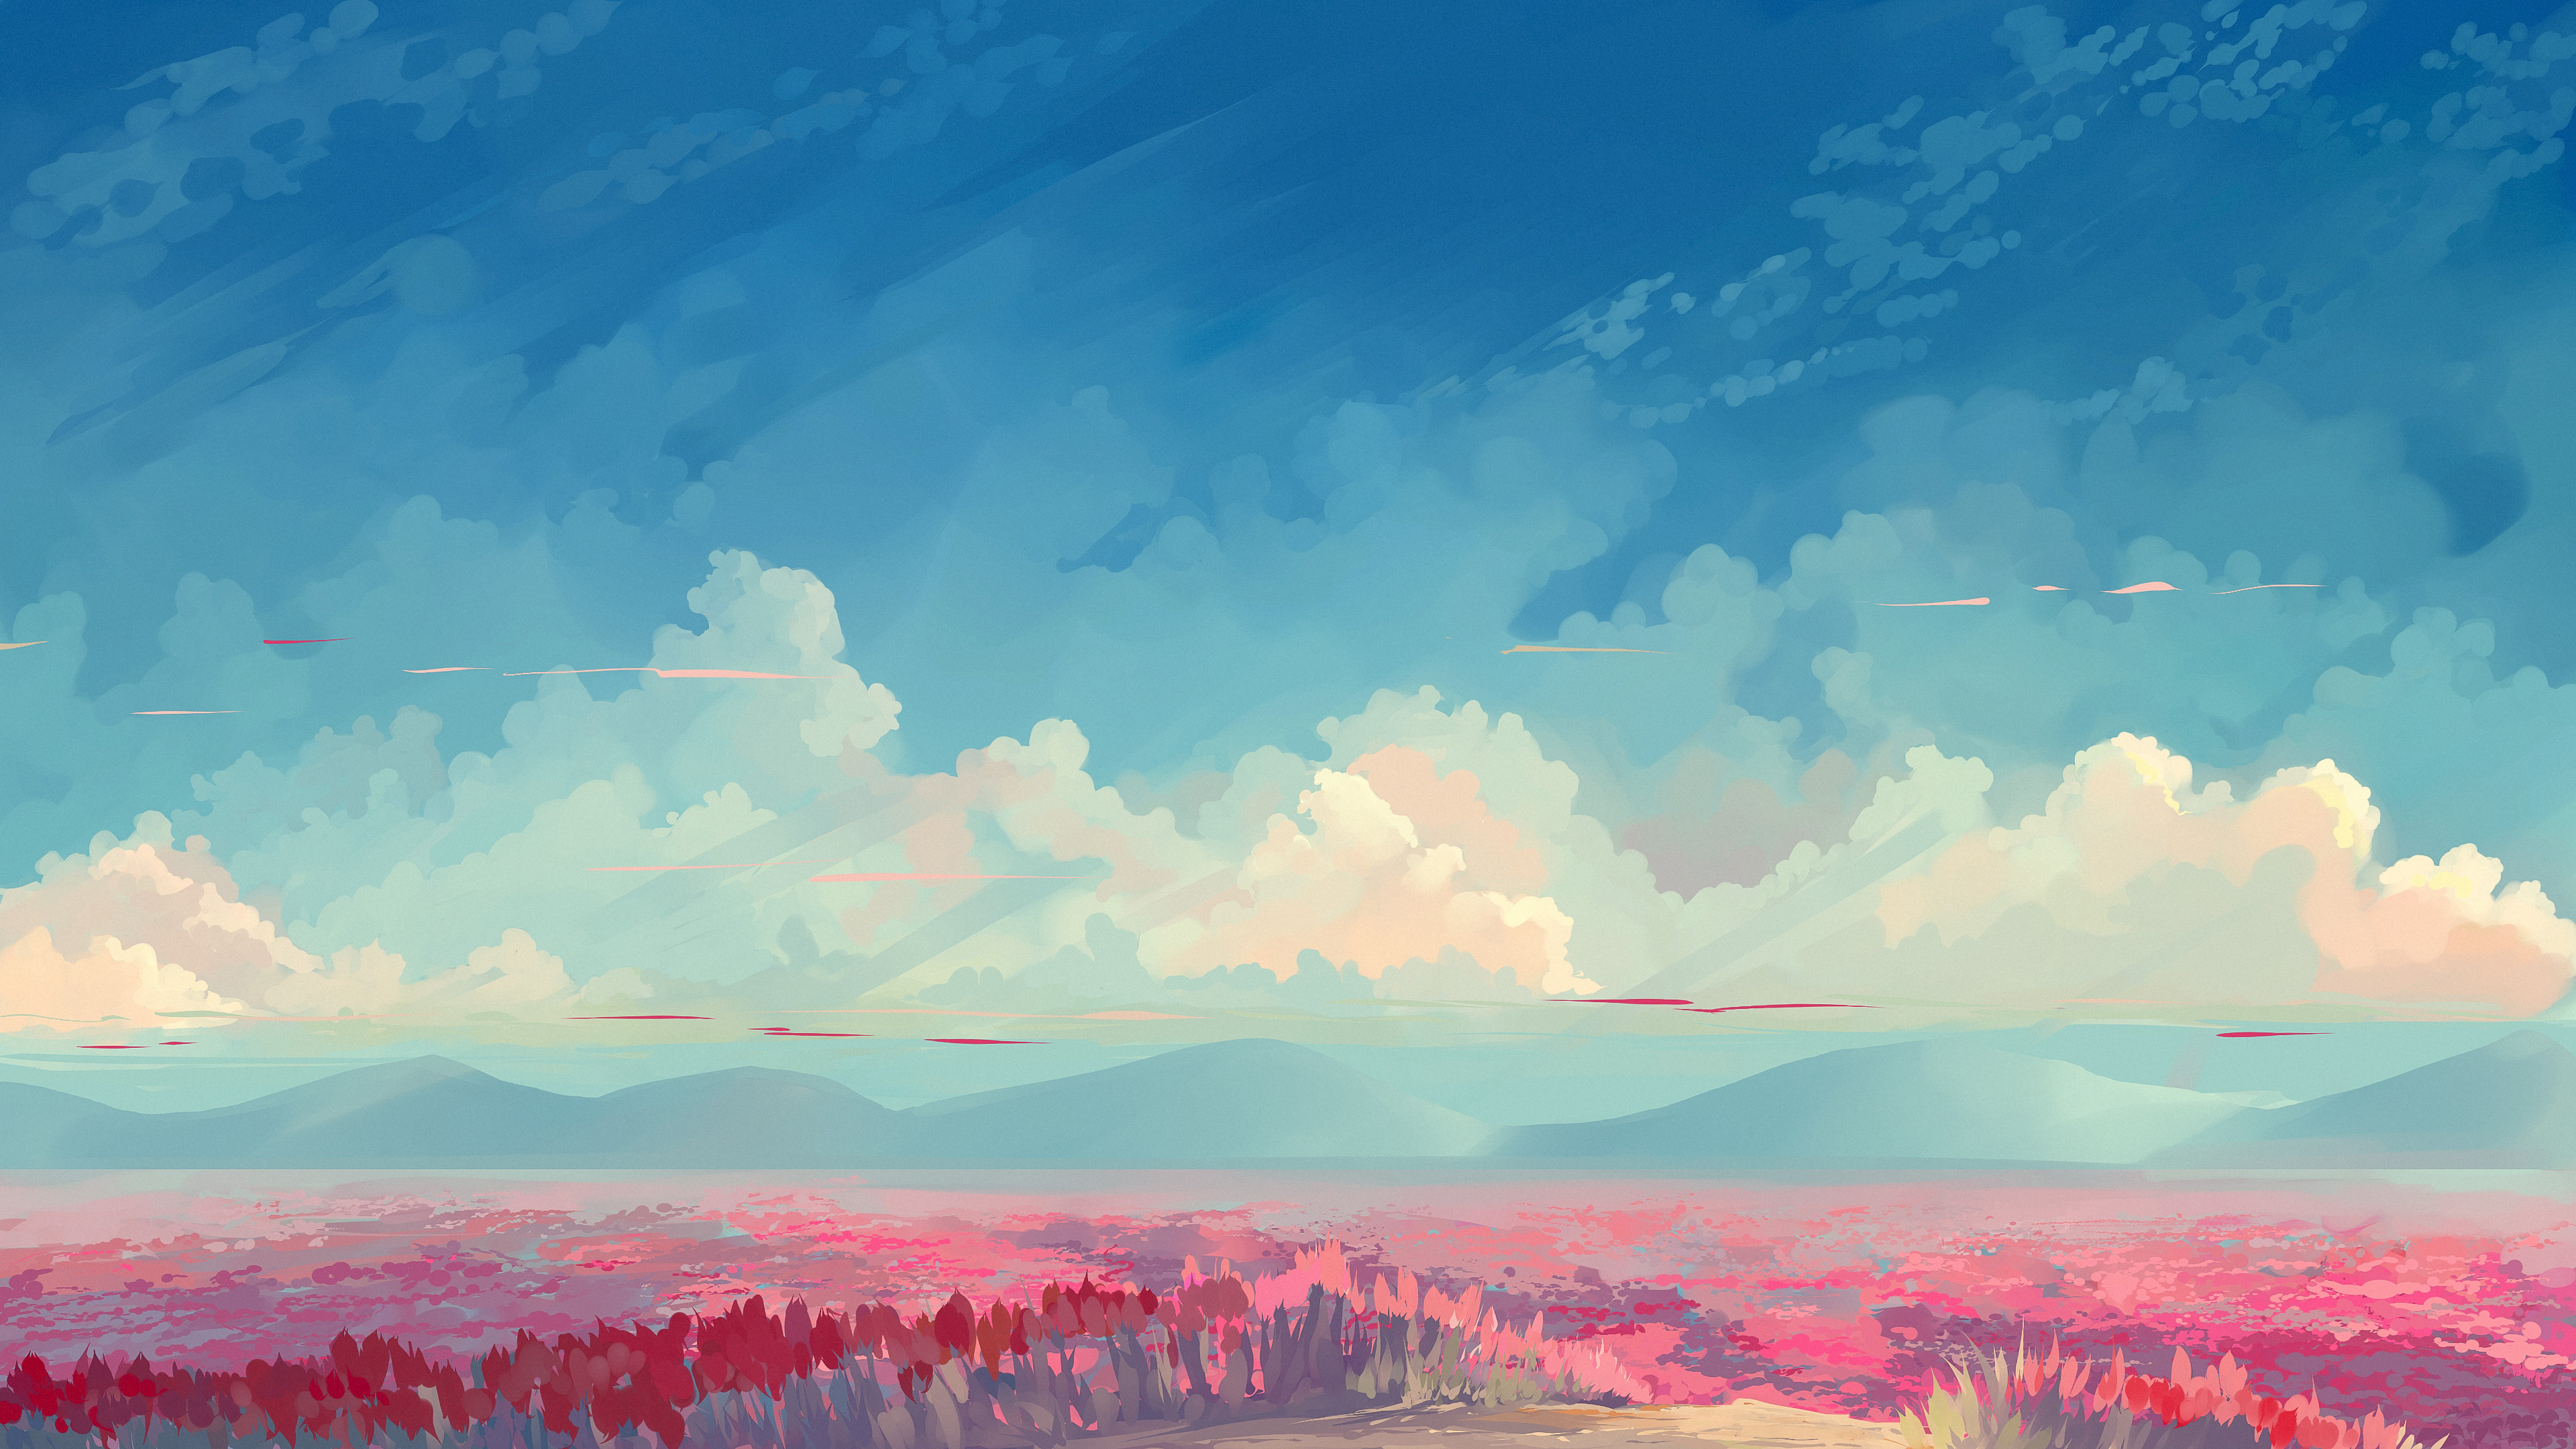 To The Sky Hd Anime 4k Wallpapers Images Backgrounds